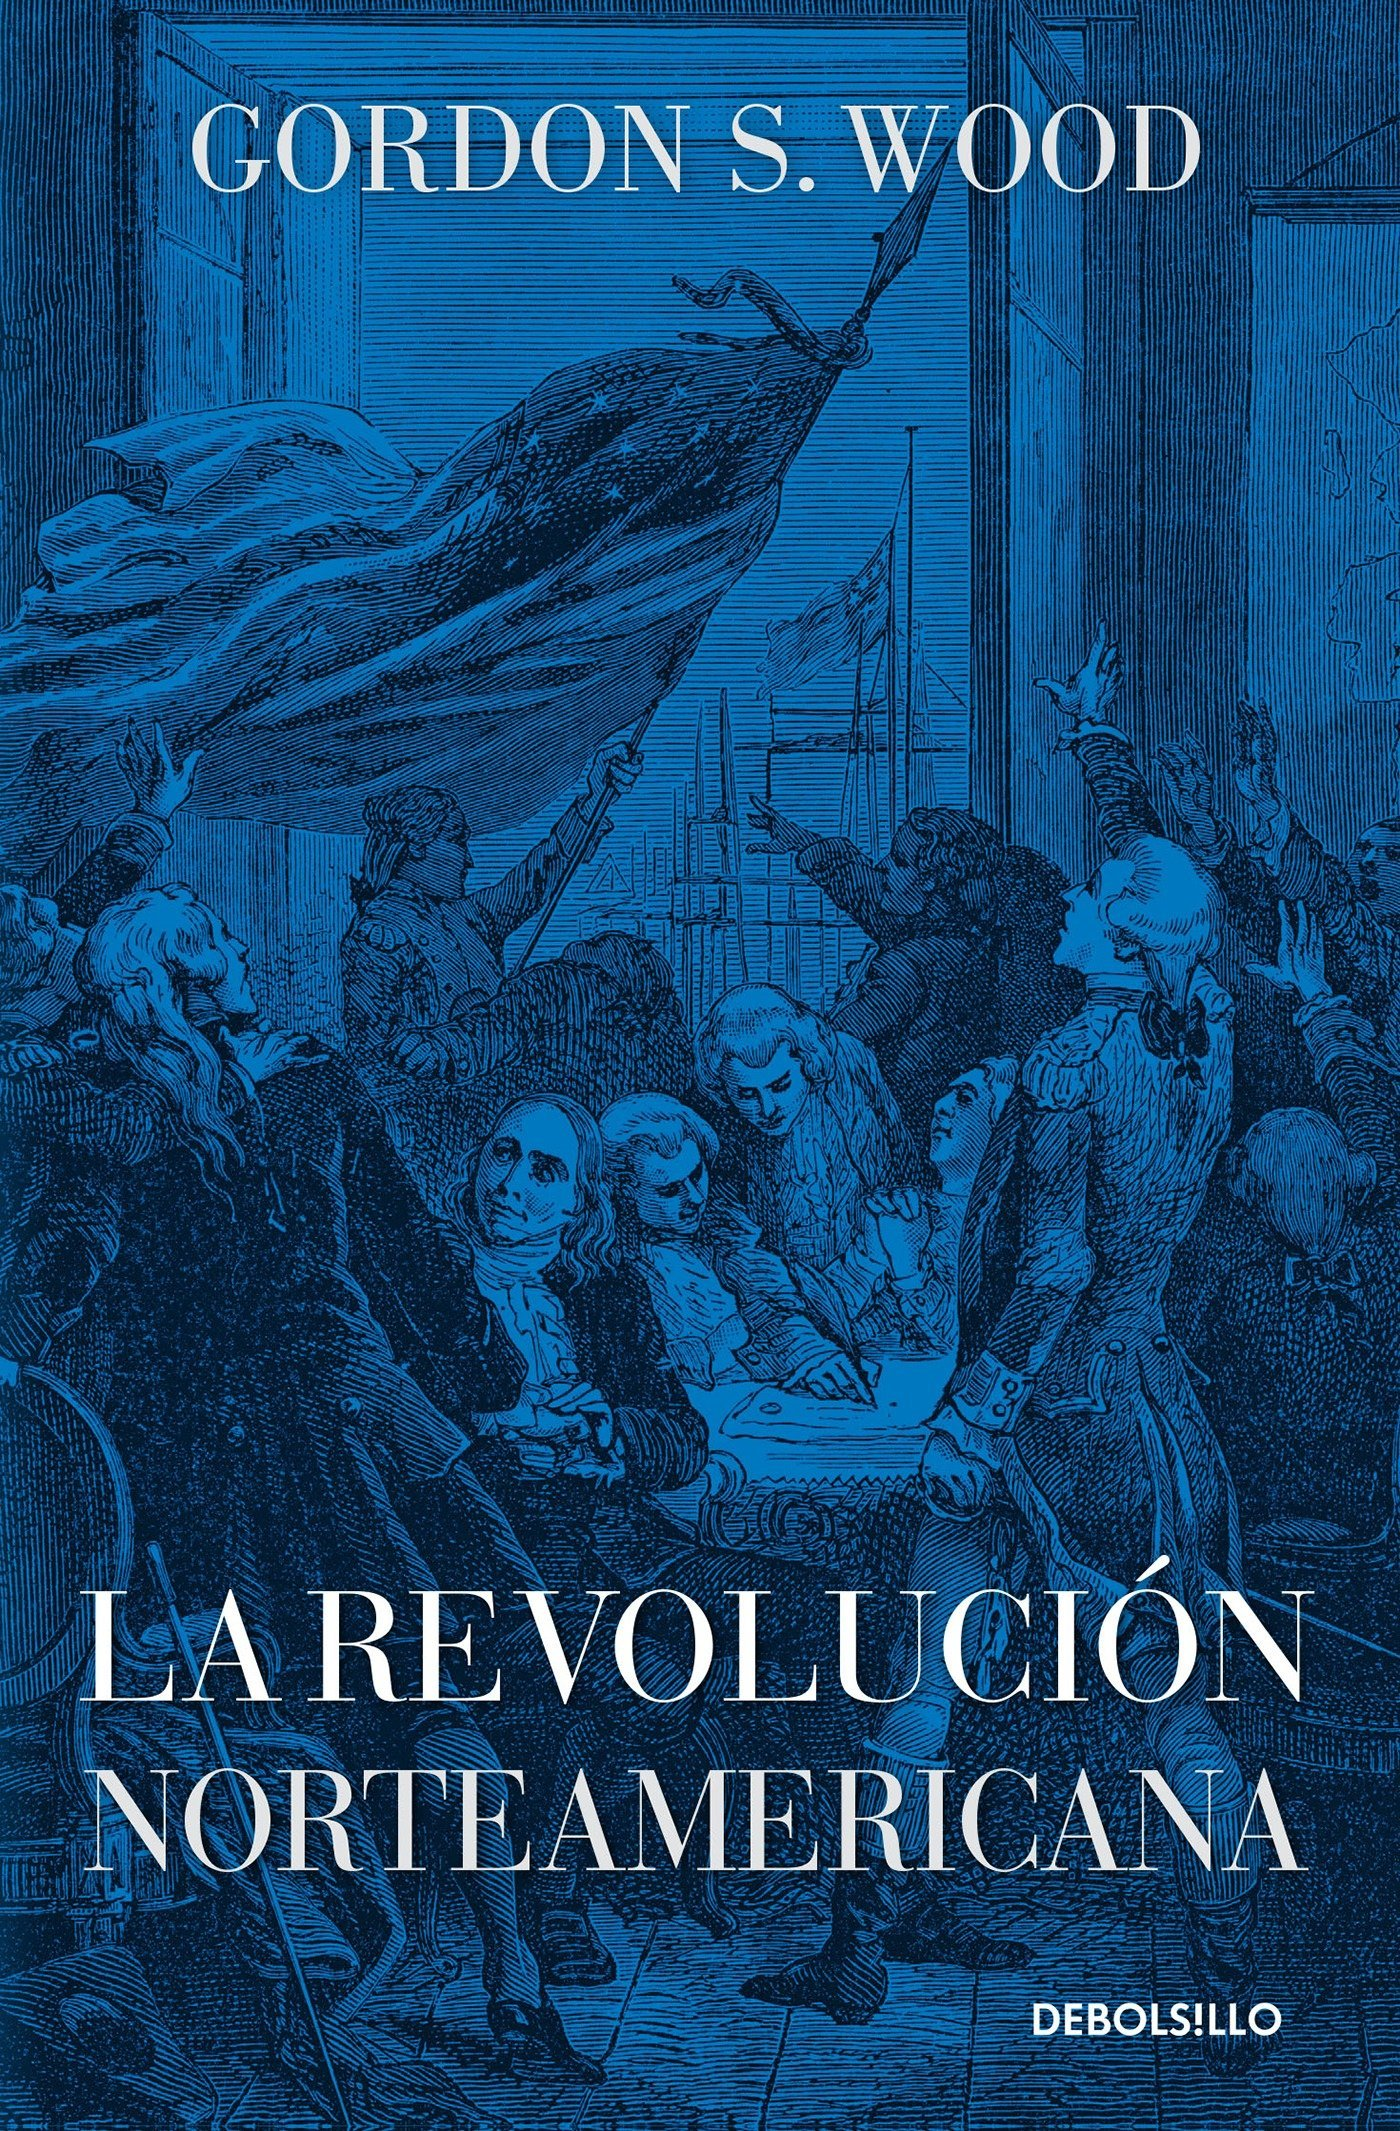 La Revolución Norteamericana / The American Revolution: A History: Amazon.es: Gordon S. Wood: Libros